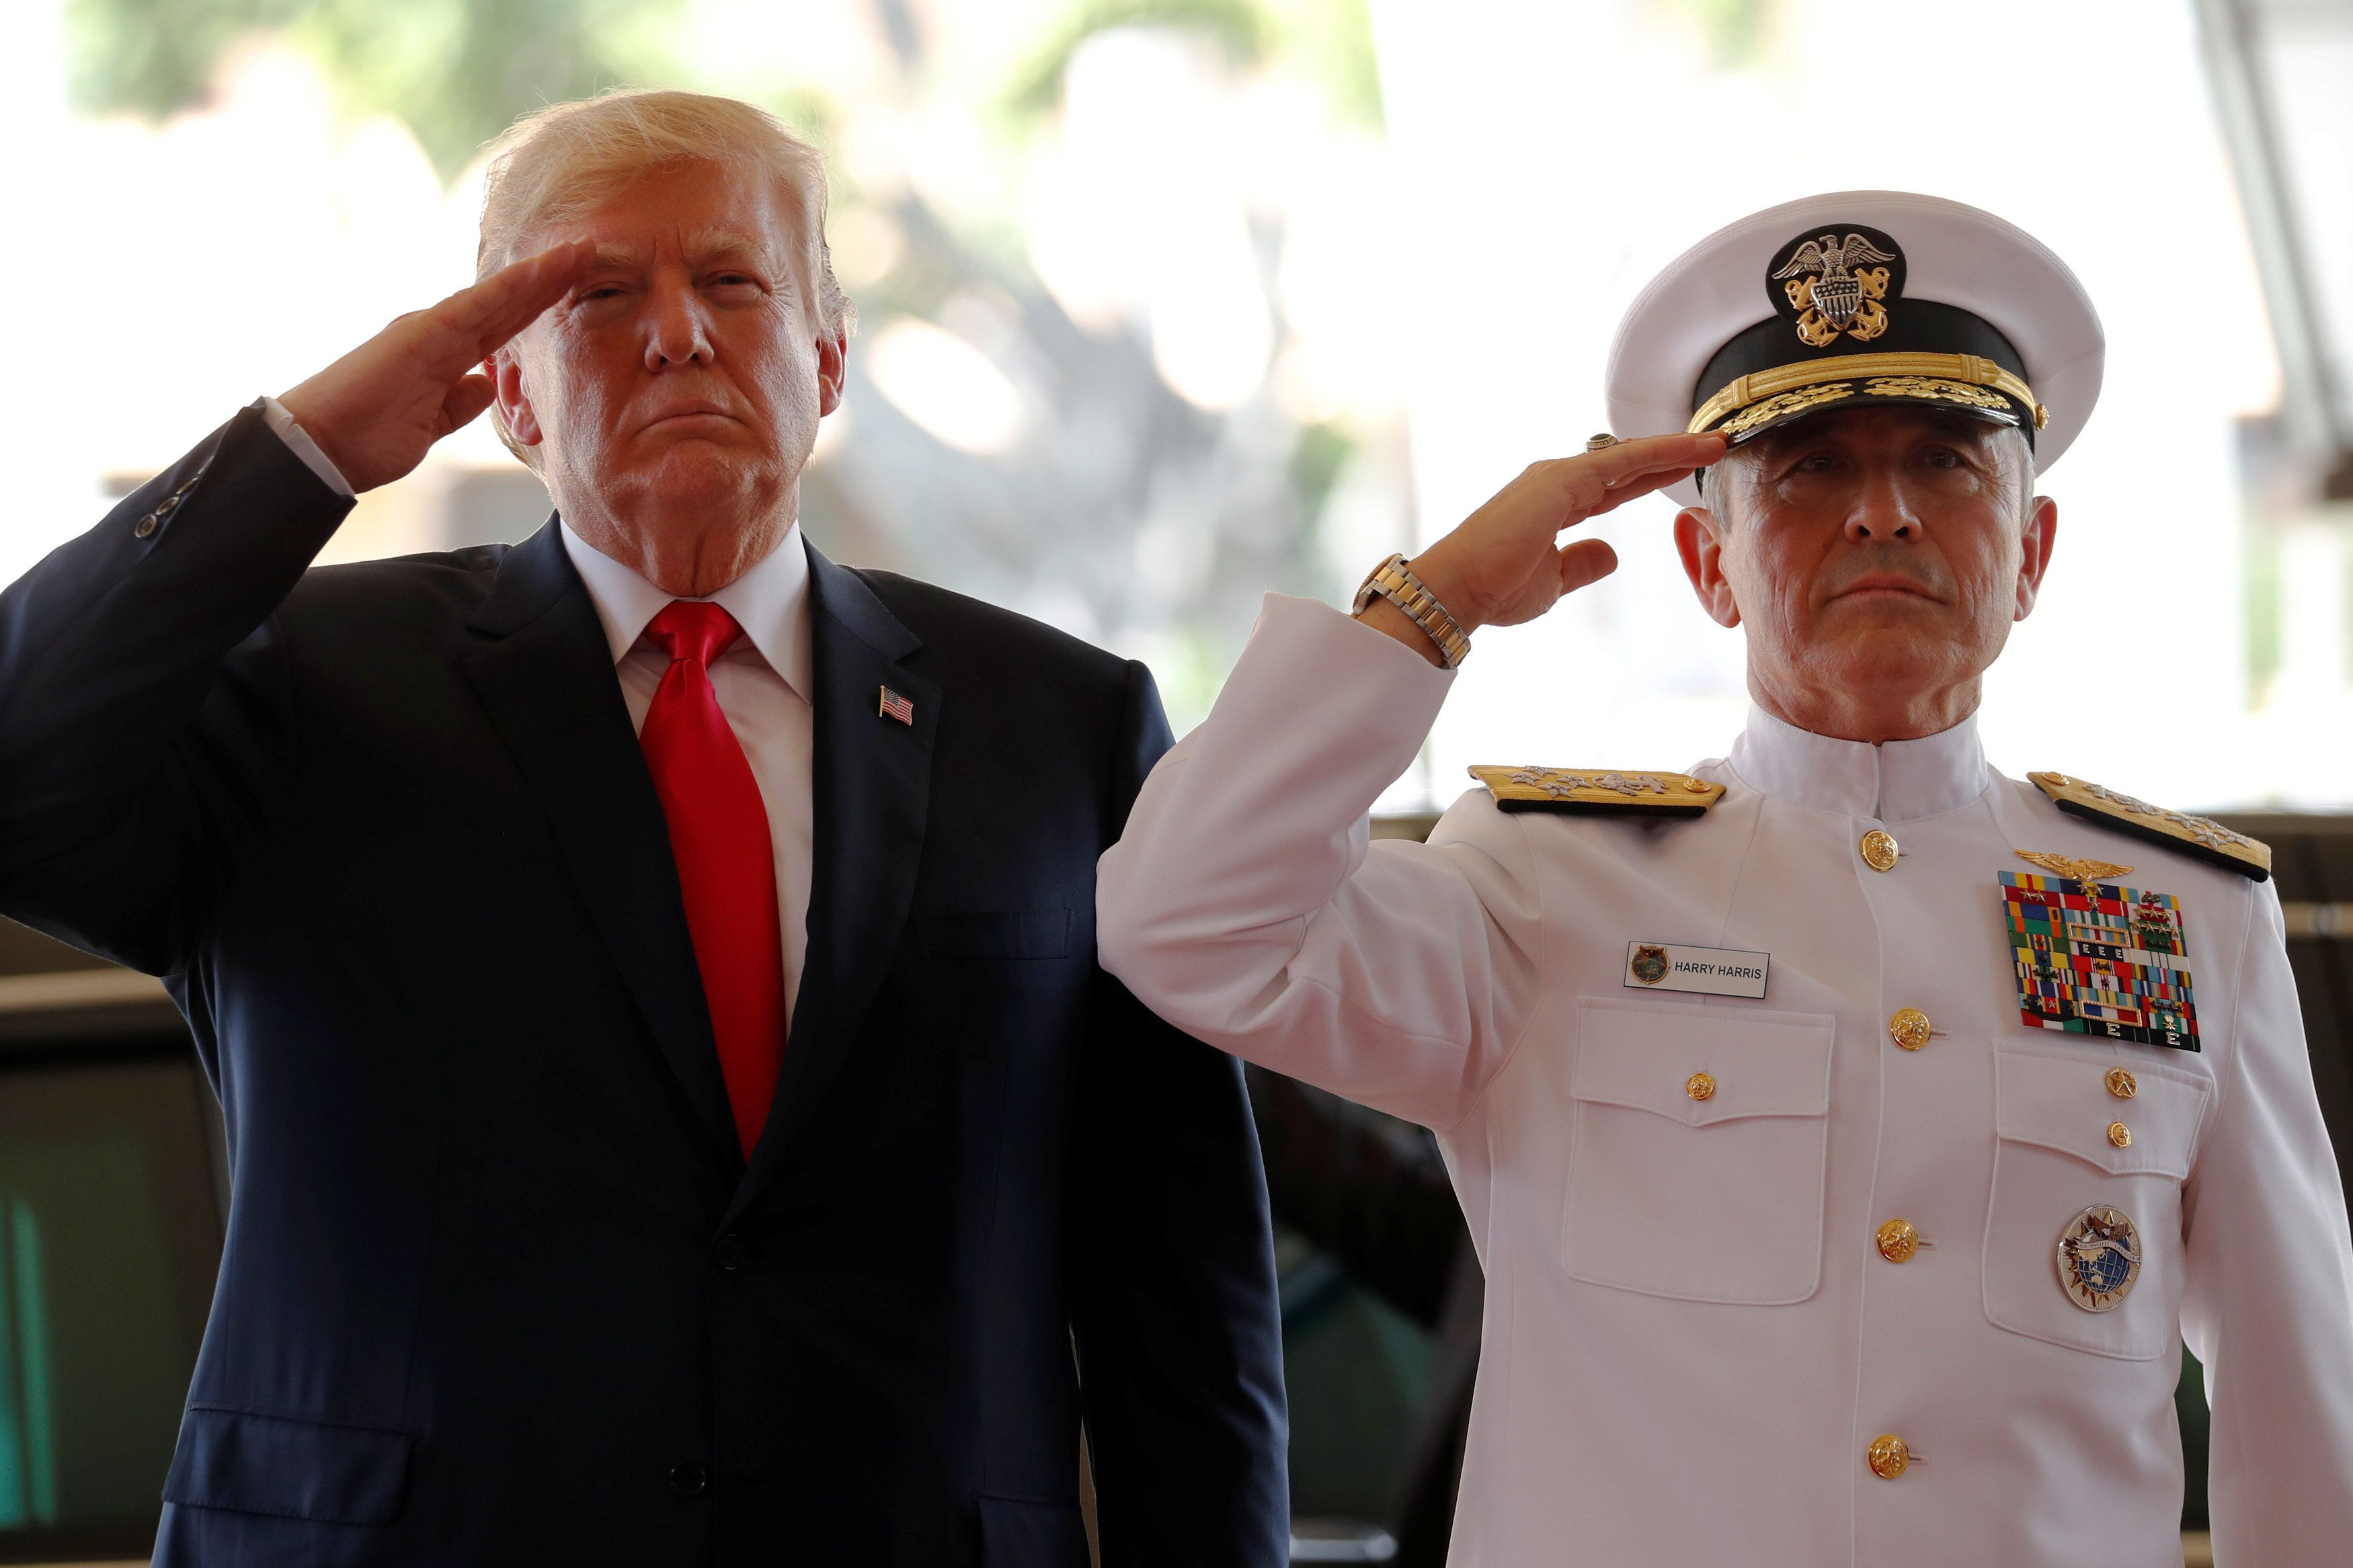 U.S. President Donald Trump is welcomed by U.S. Navy Admiral Harry Harris, commander of United States Pacific Command, at its headquarters in Aiea, Hawaii, U.S. November 3, 2017. REUTERS/Jonathan Ernst